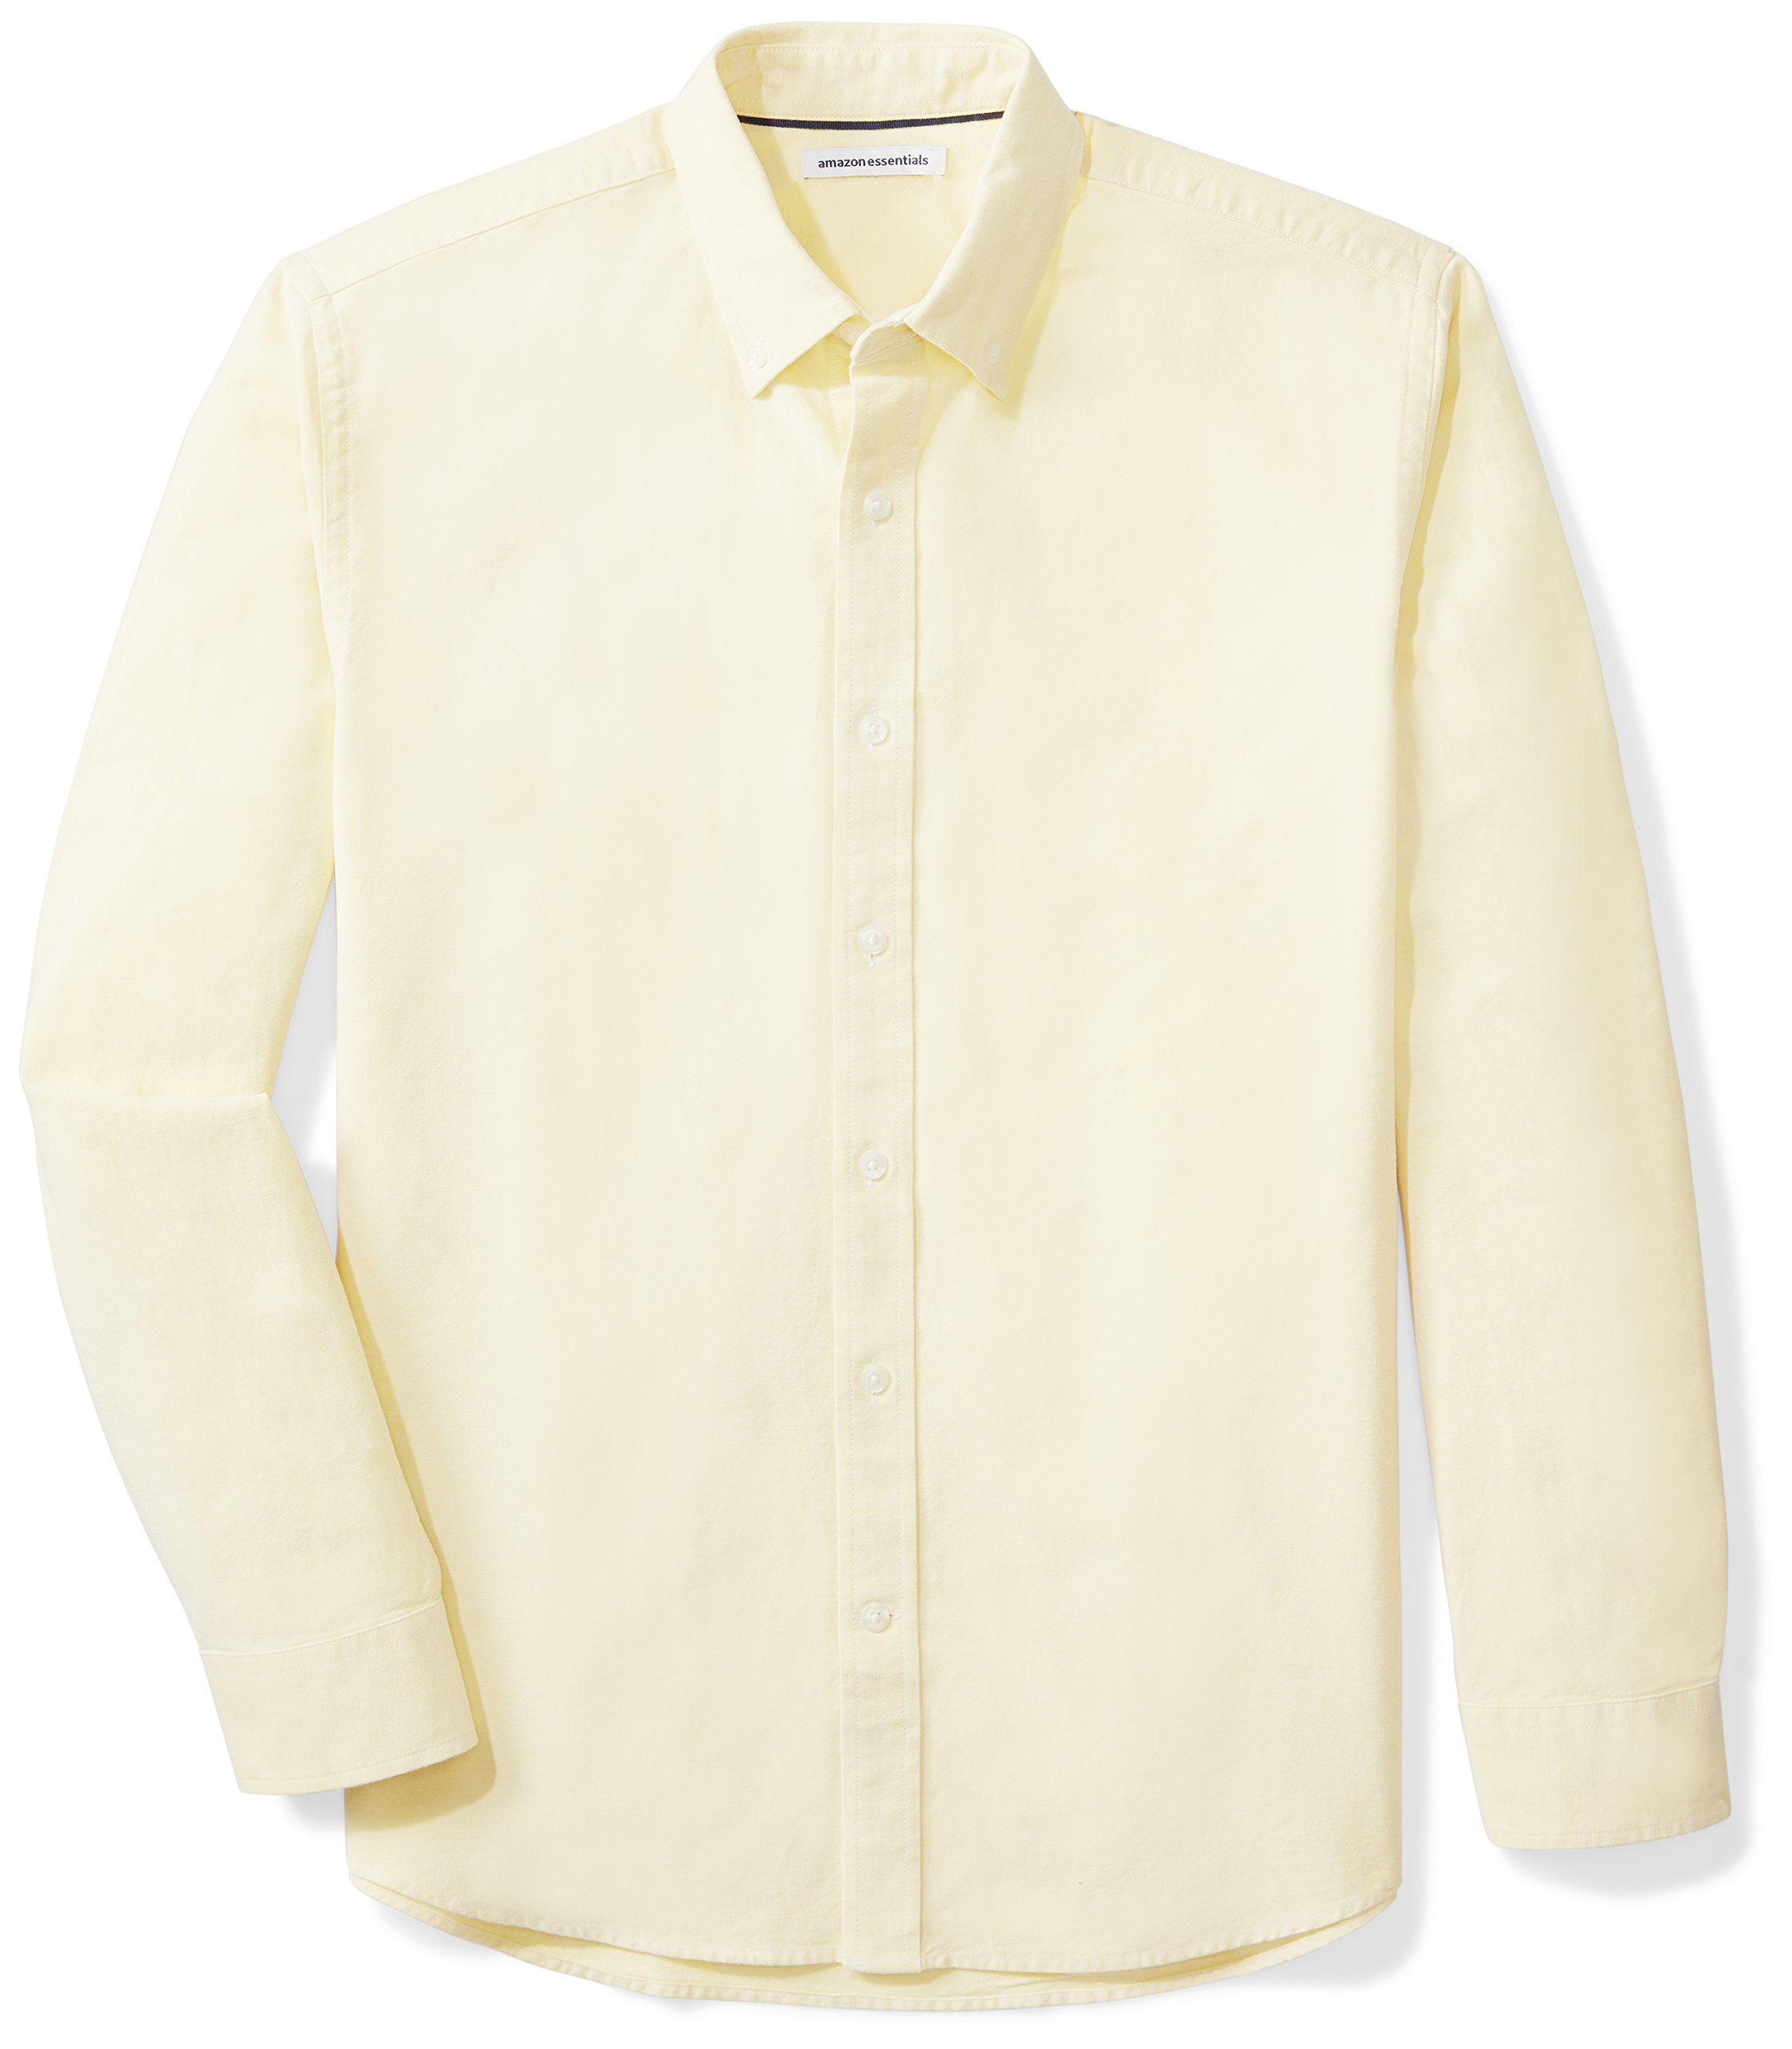 Amazon Essentials Men's Regular-Fit Long-Sleeve Solid Oxford Shirt, Yellow, Large by Amazon Essentials